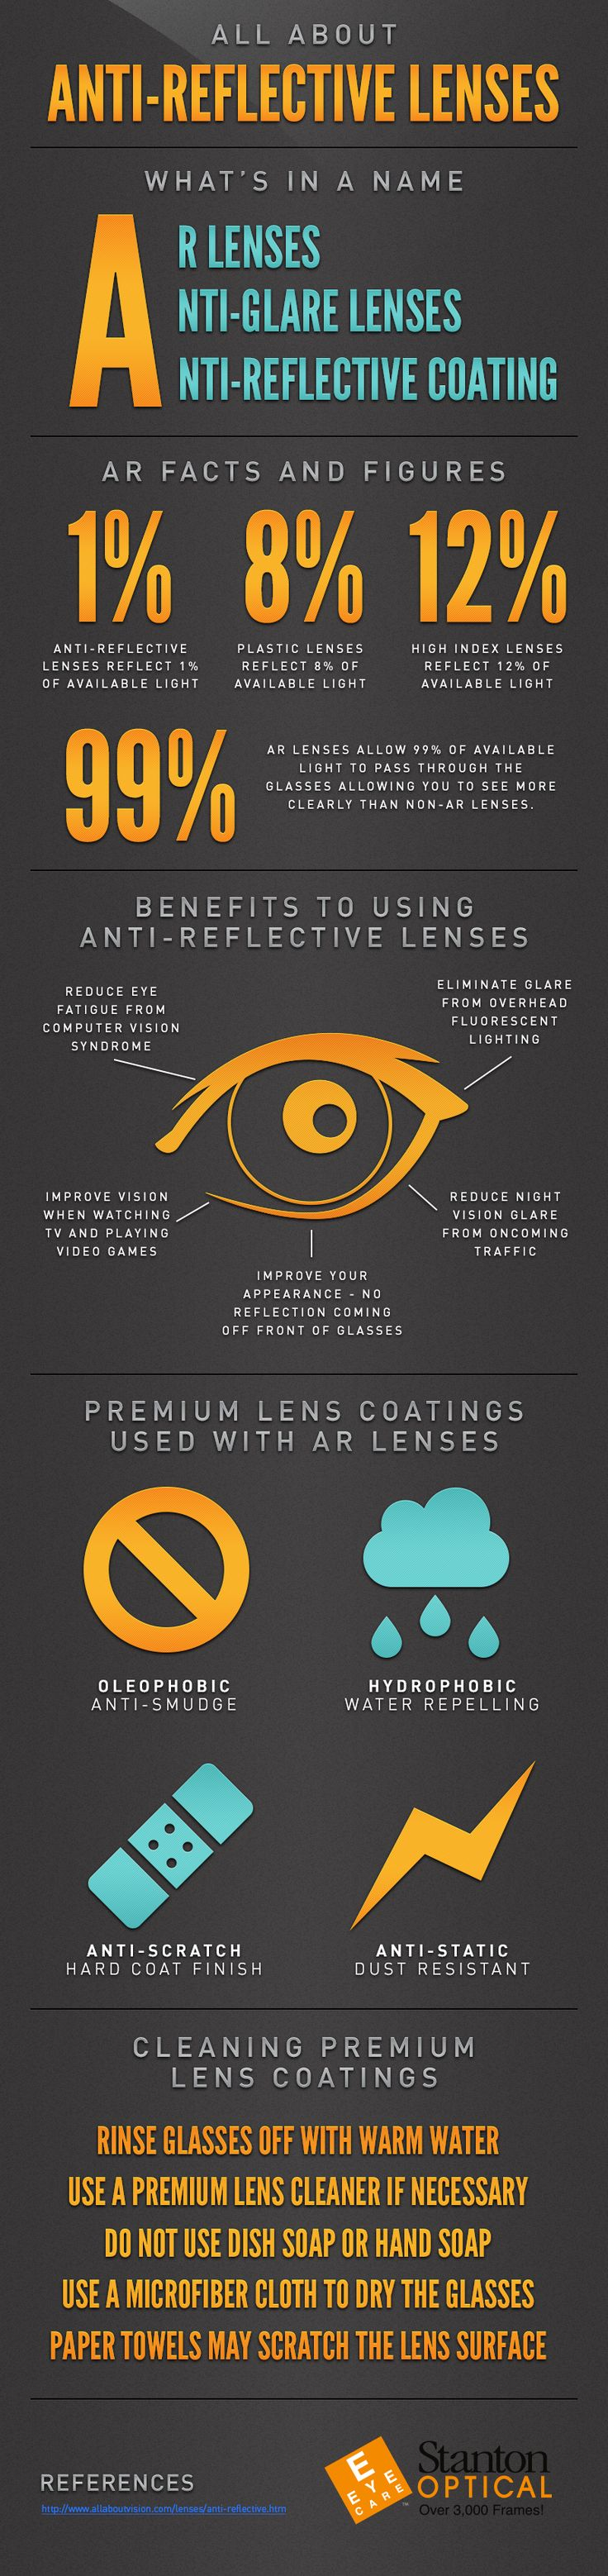 Anti-reflective lenses infographic by Stanton Optical. http://www.stantonoptical.com/wp-content/uploads/2013/04/130530B_Stanton_Reflective_Infographic.png